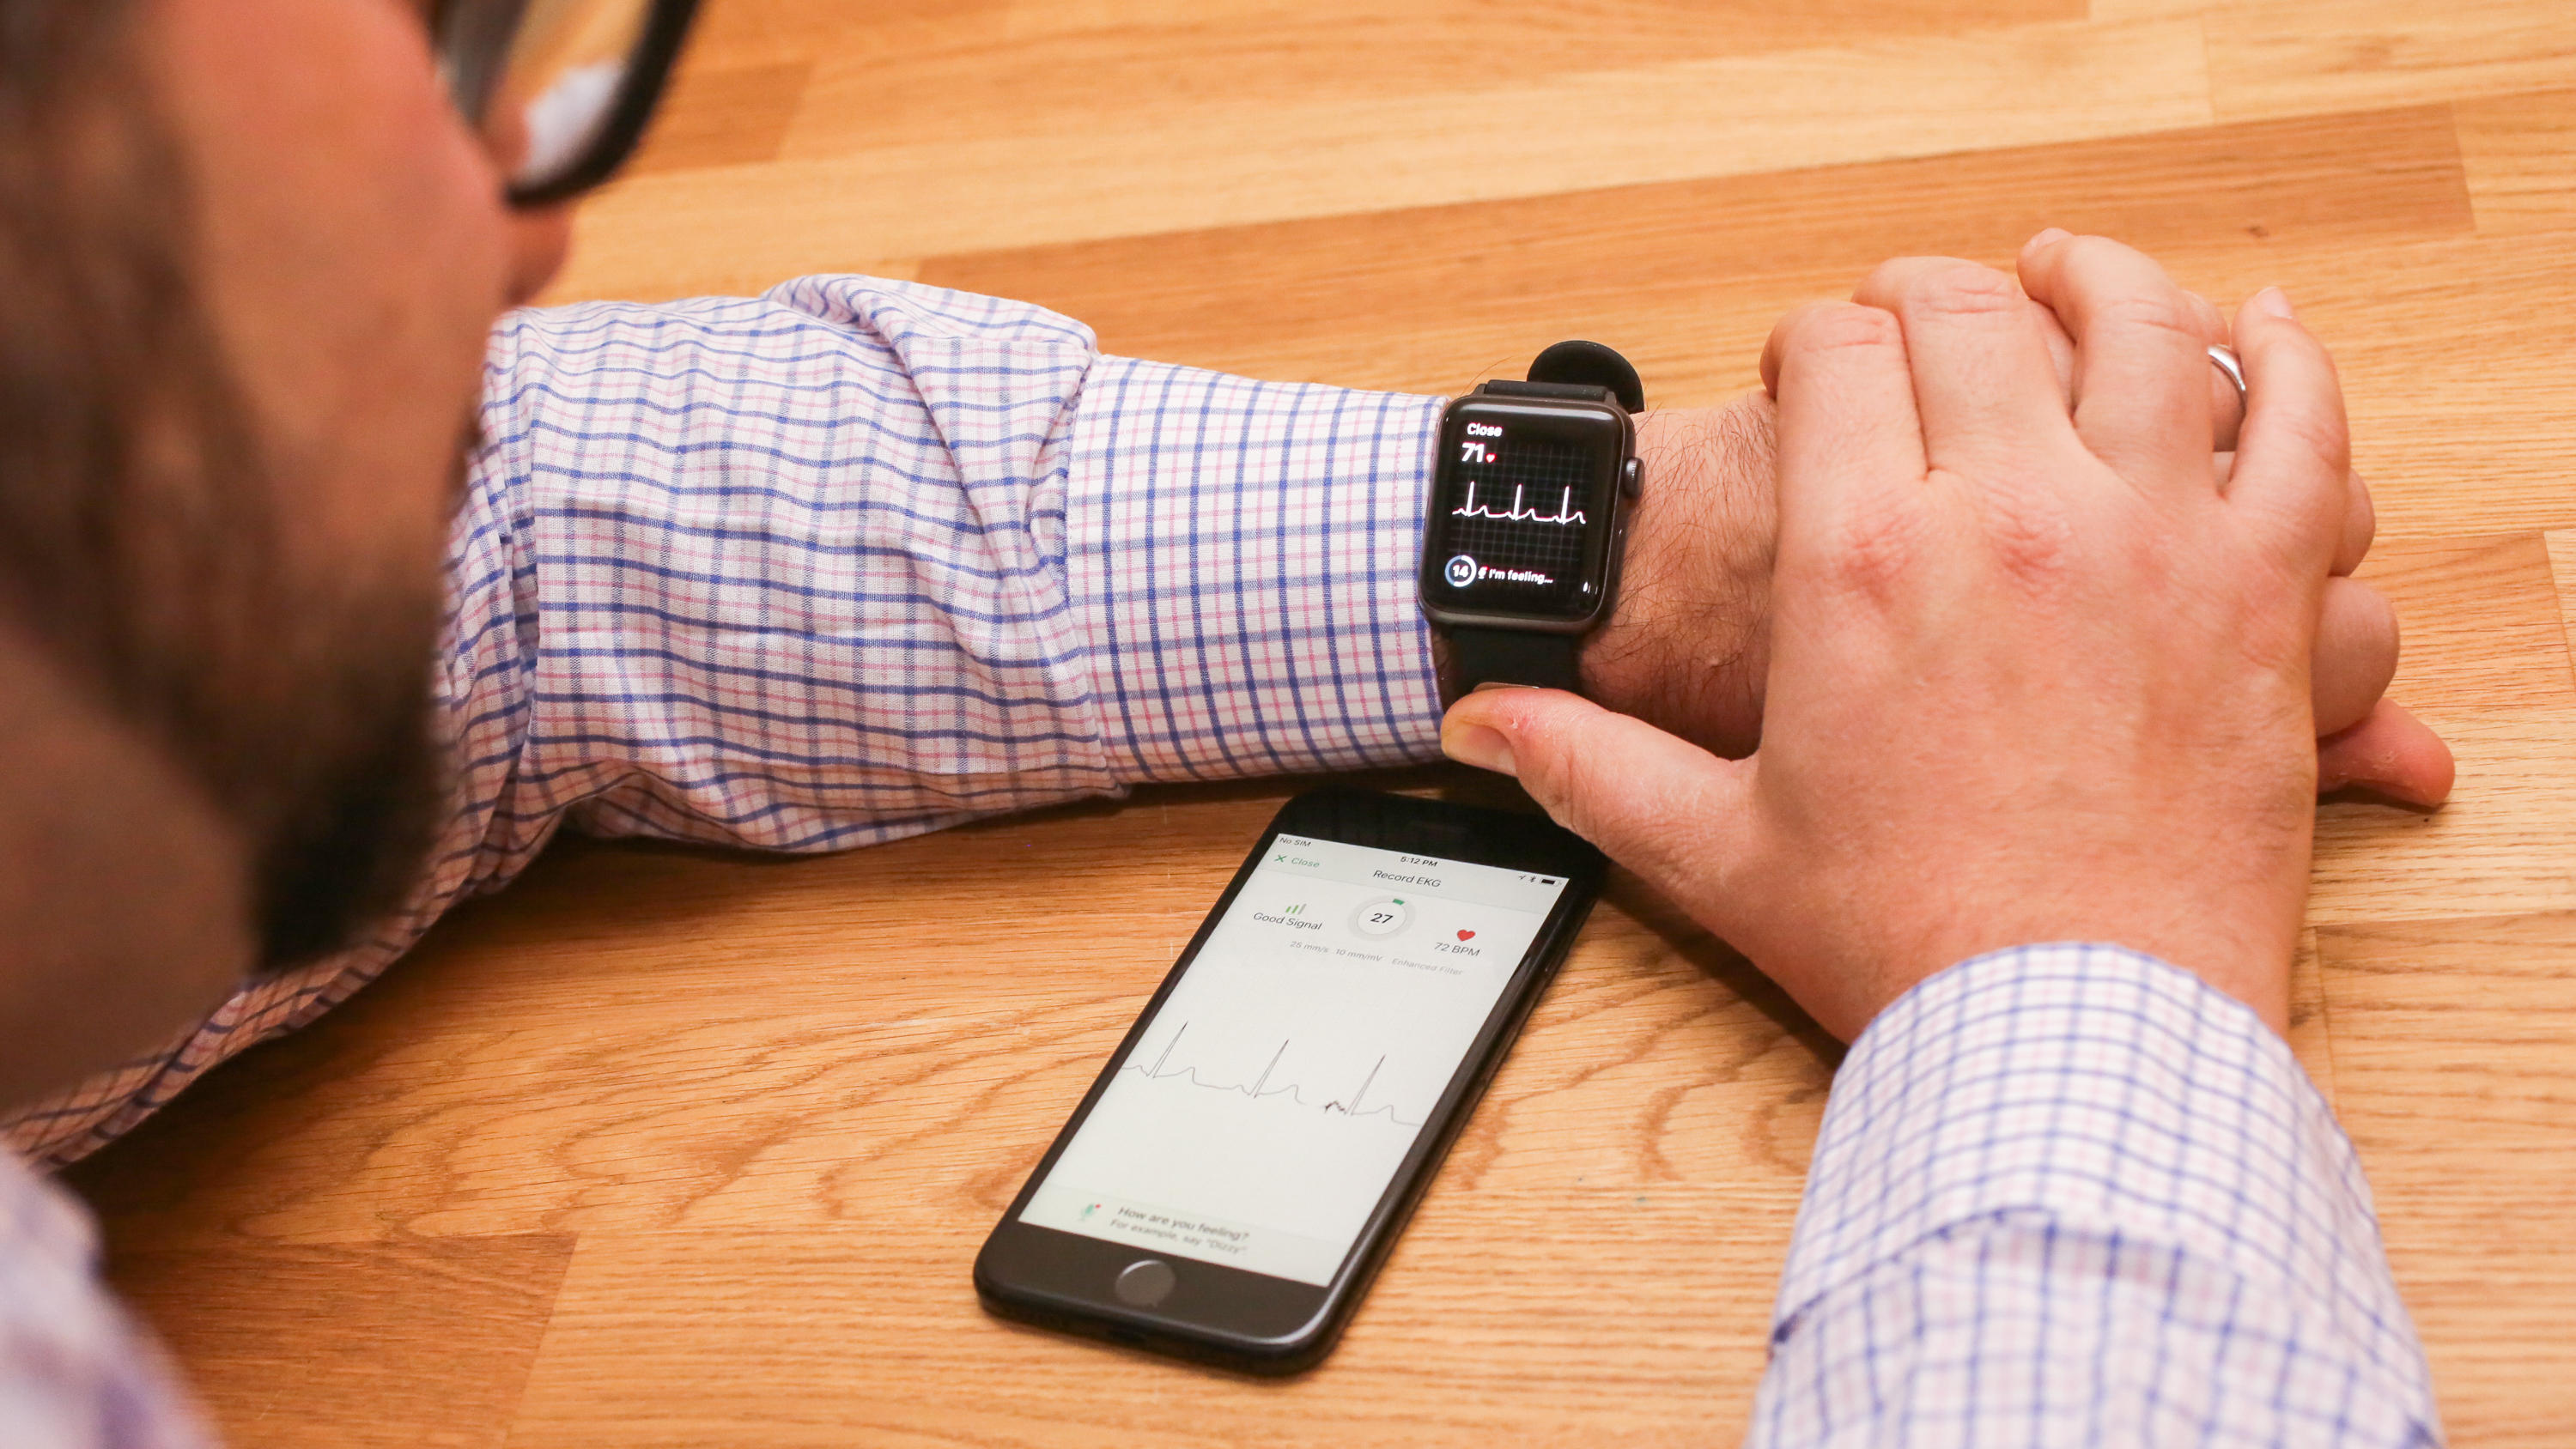 09-alivecor-kardia-band-for-apple-watch